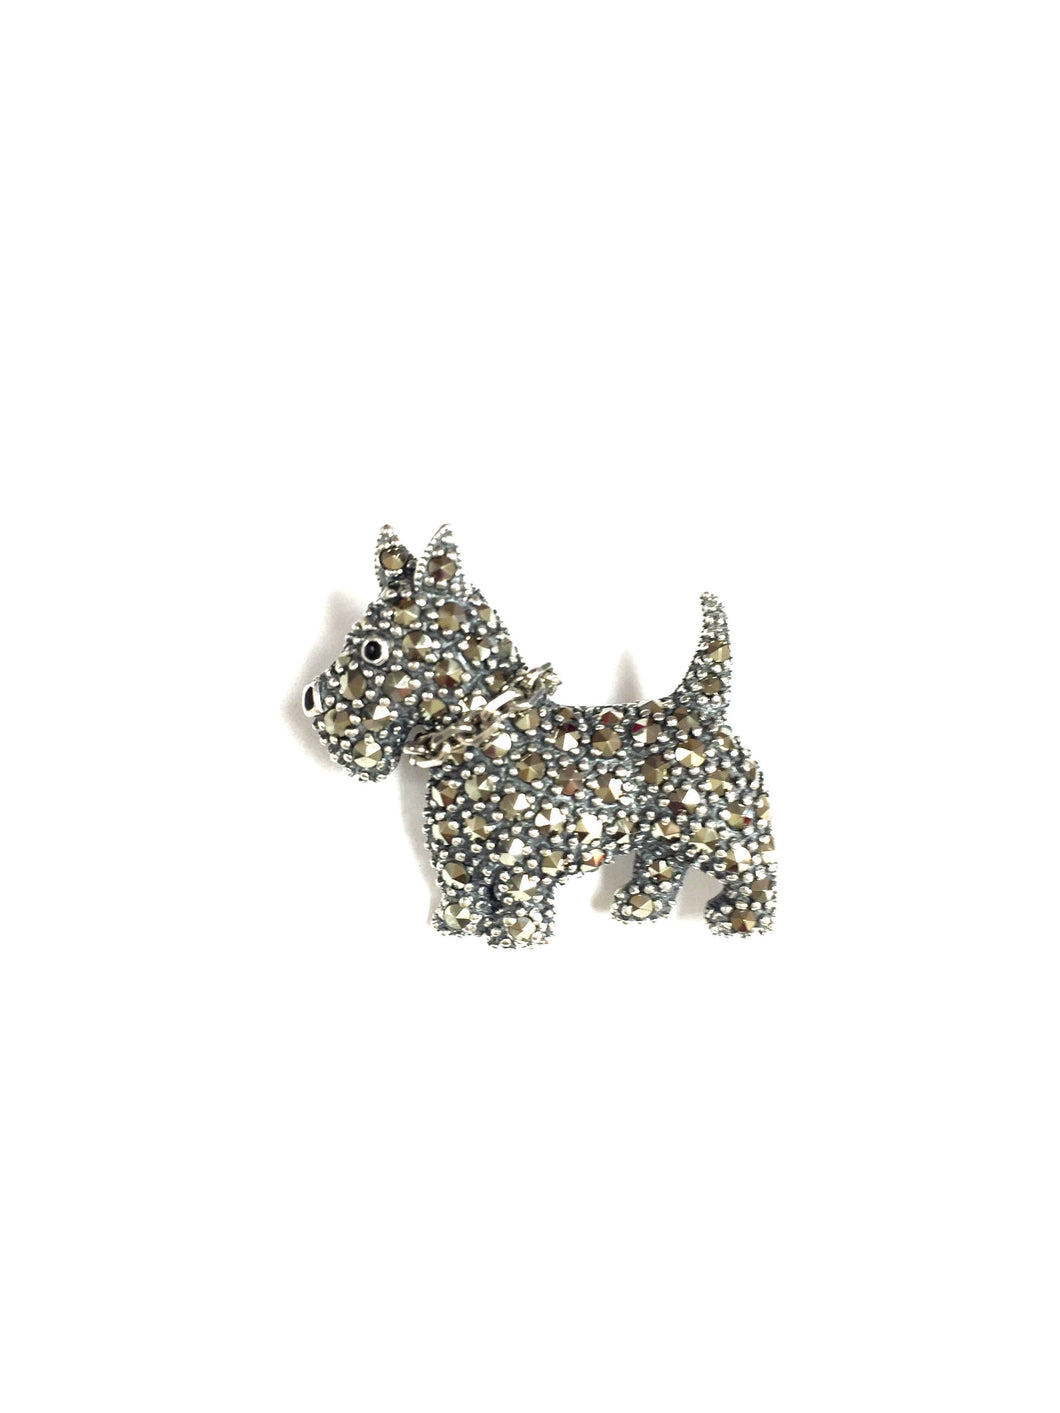 Scottie Dog Brooch!